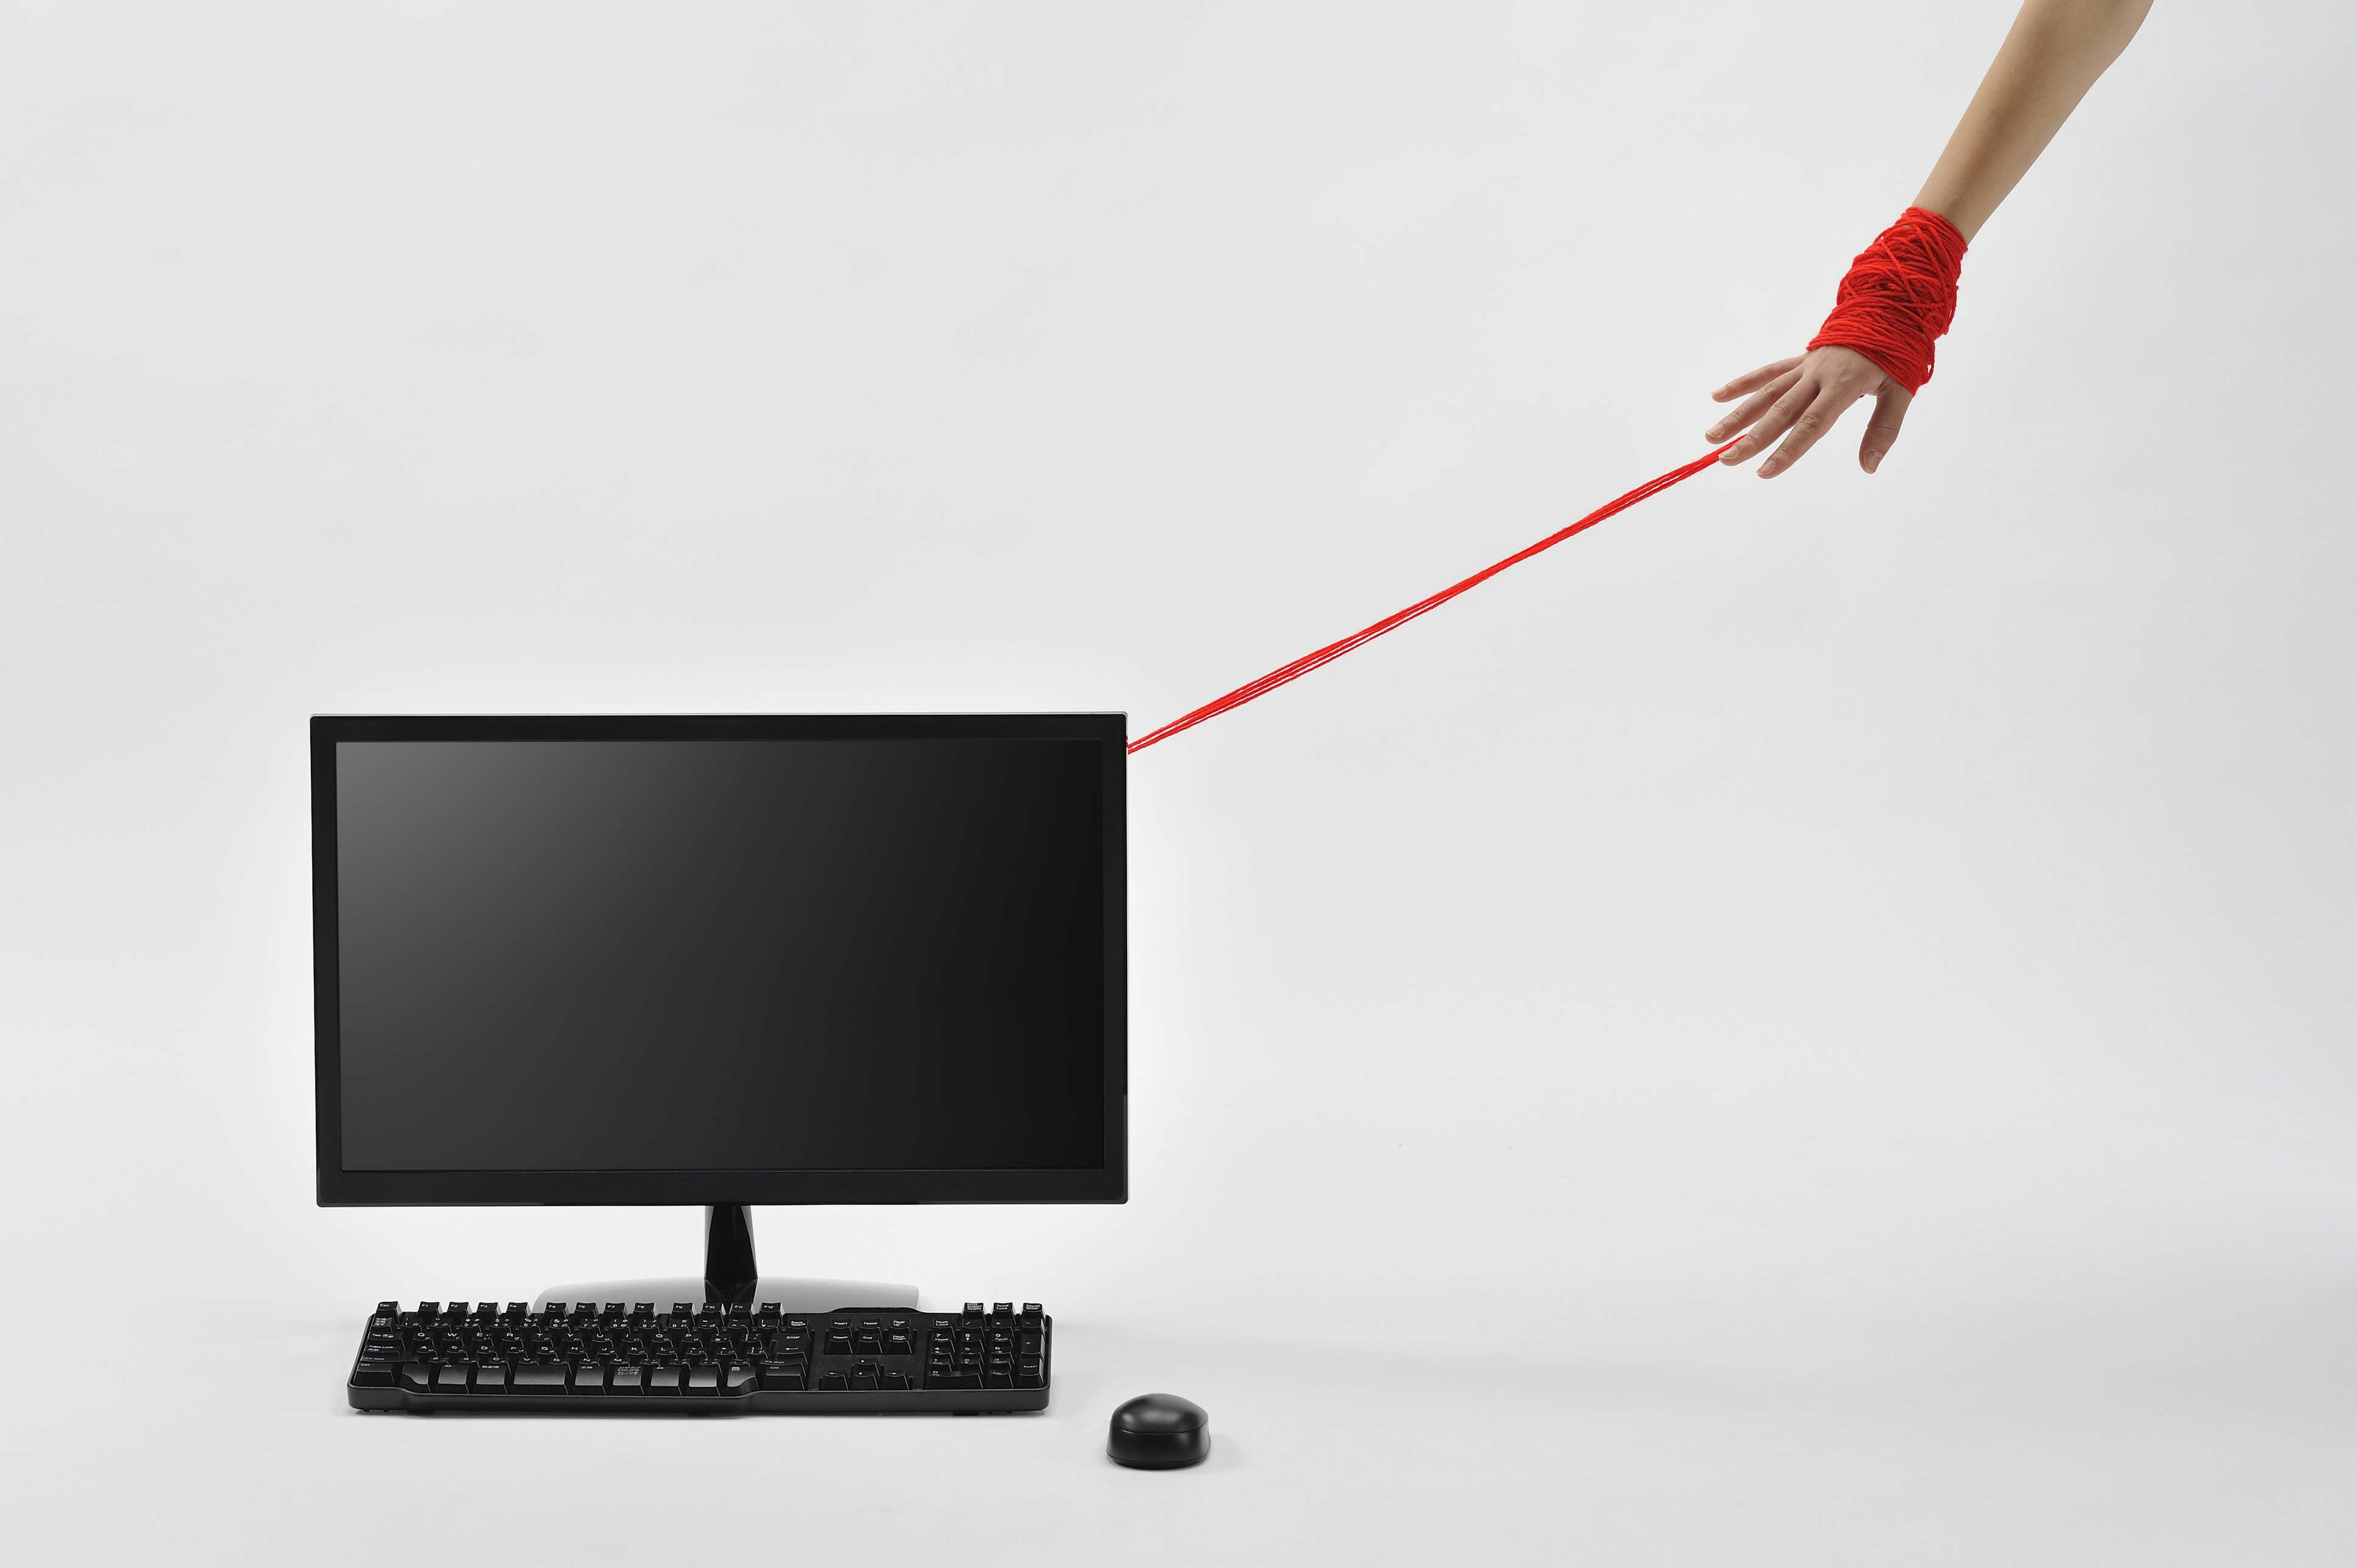 Hand tied to a computer